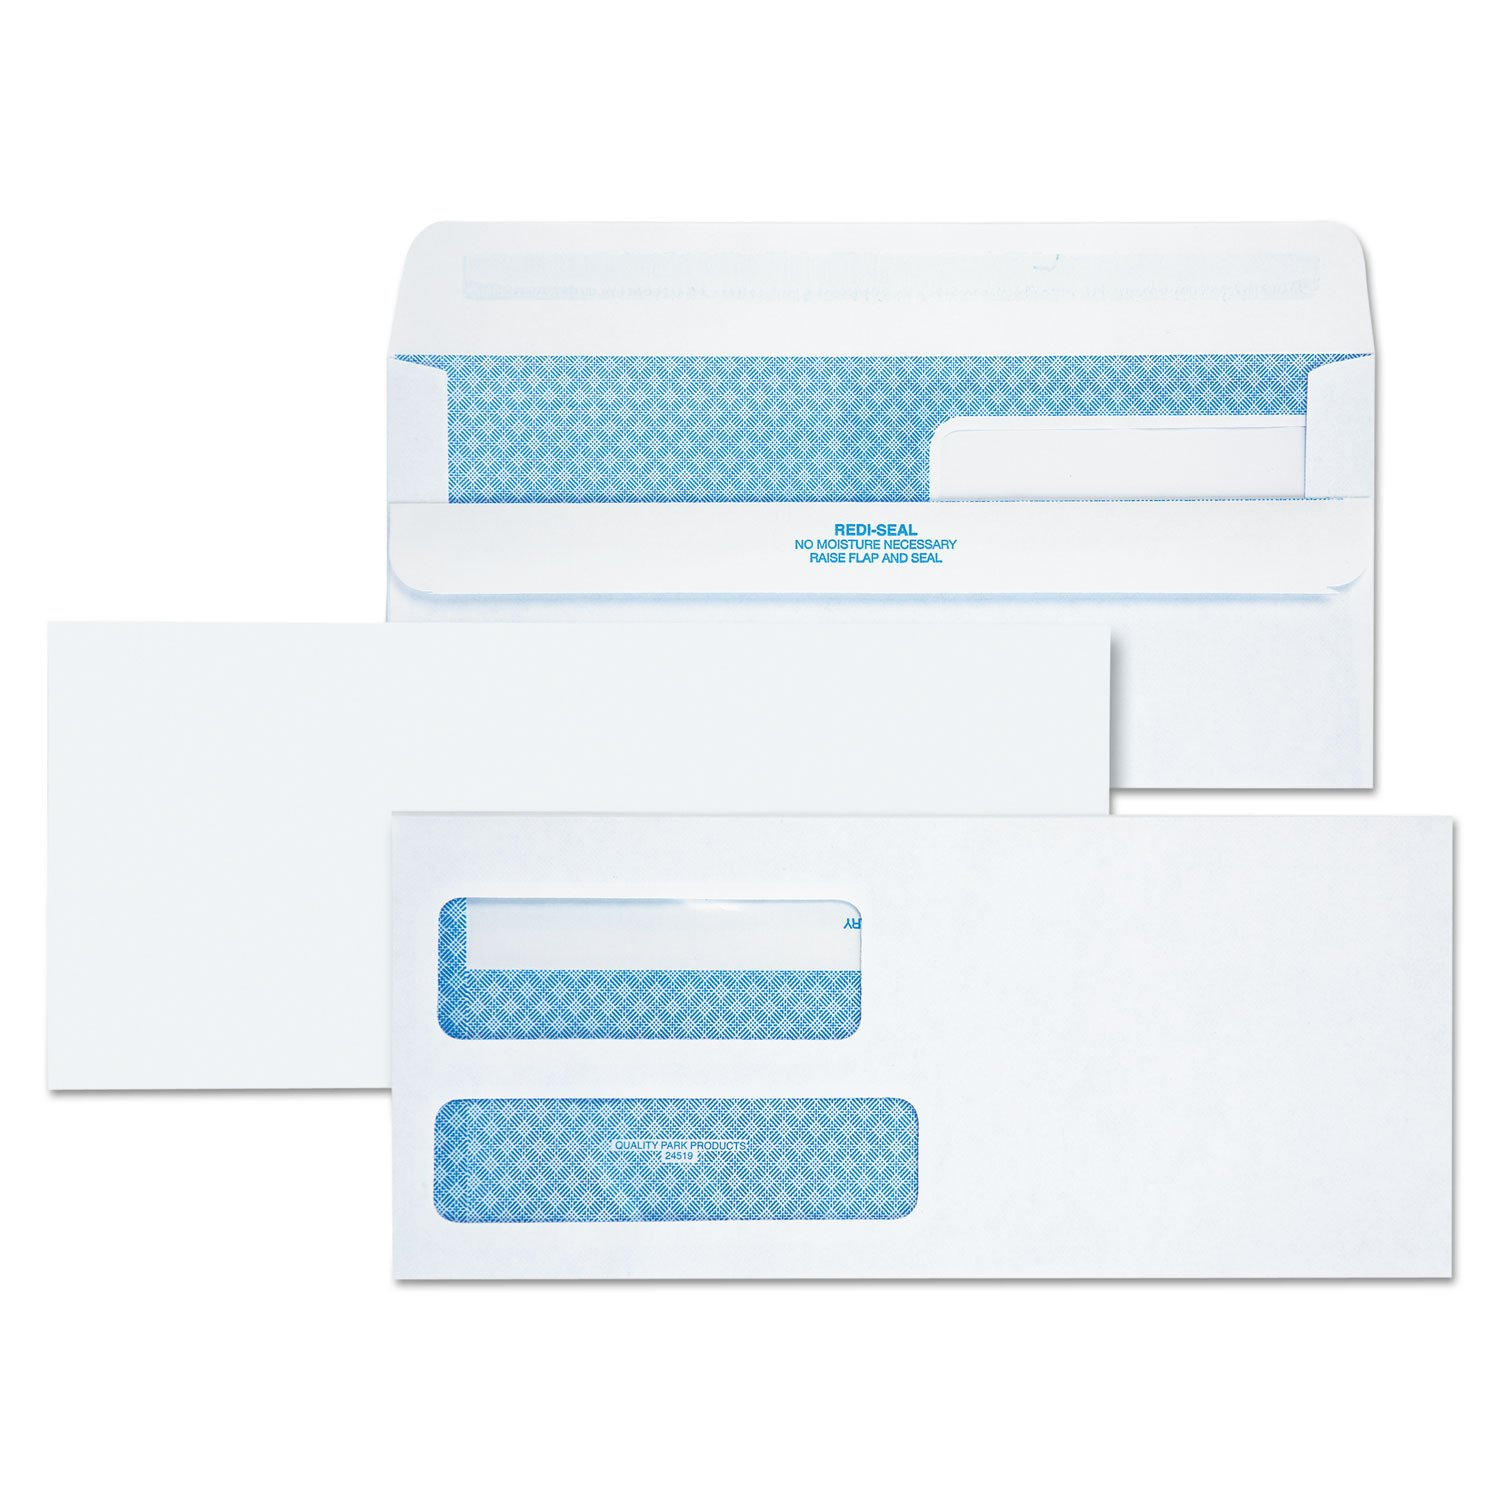 Quality Park 24519 2-Window Redi-Seal Security-Tinted Envelope, 9, 3 7/8 x 8 7/8, White, 250/CT